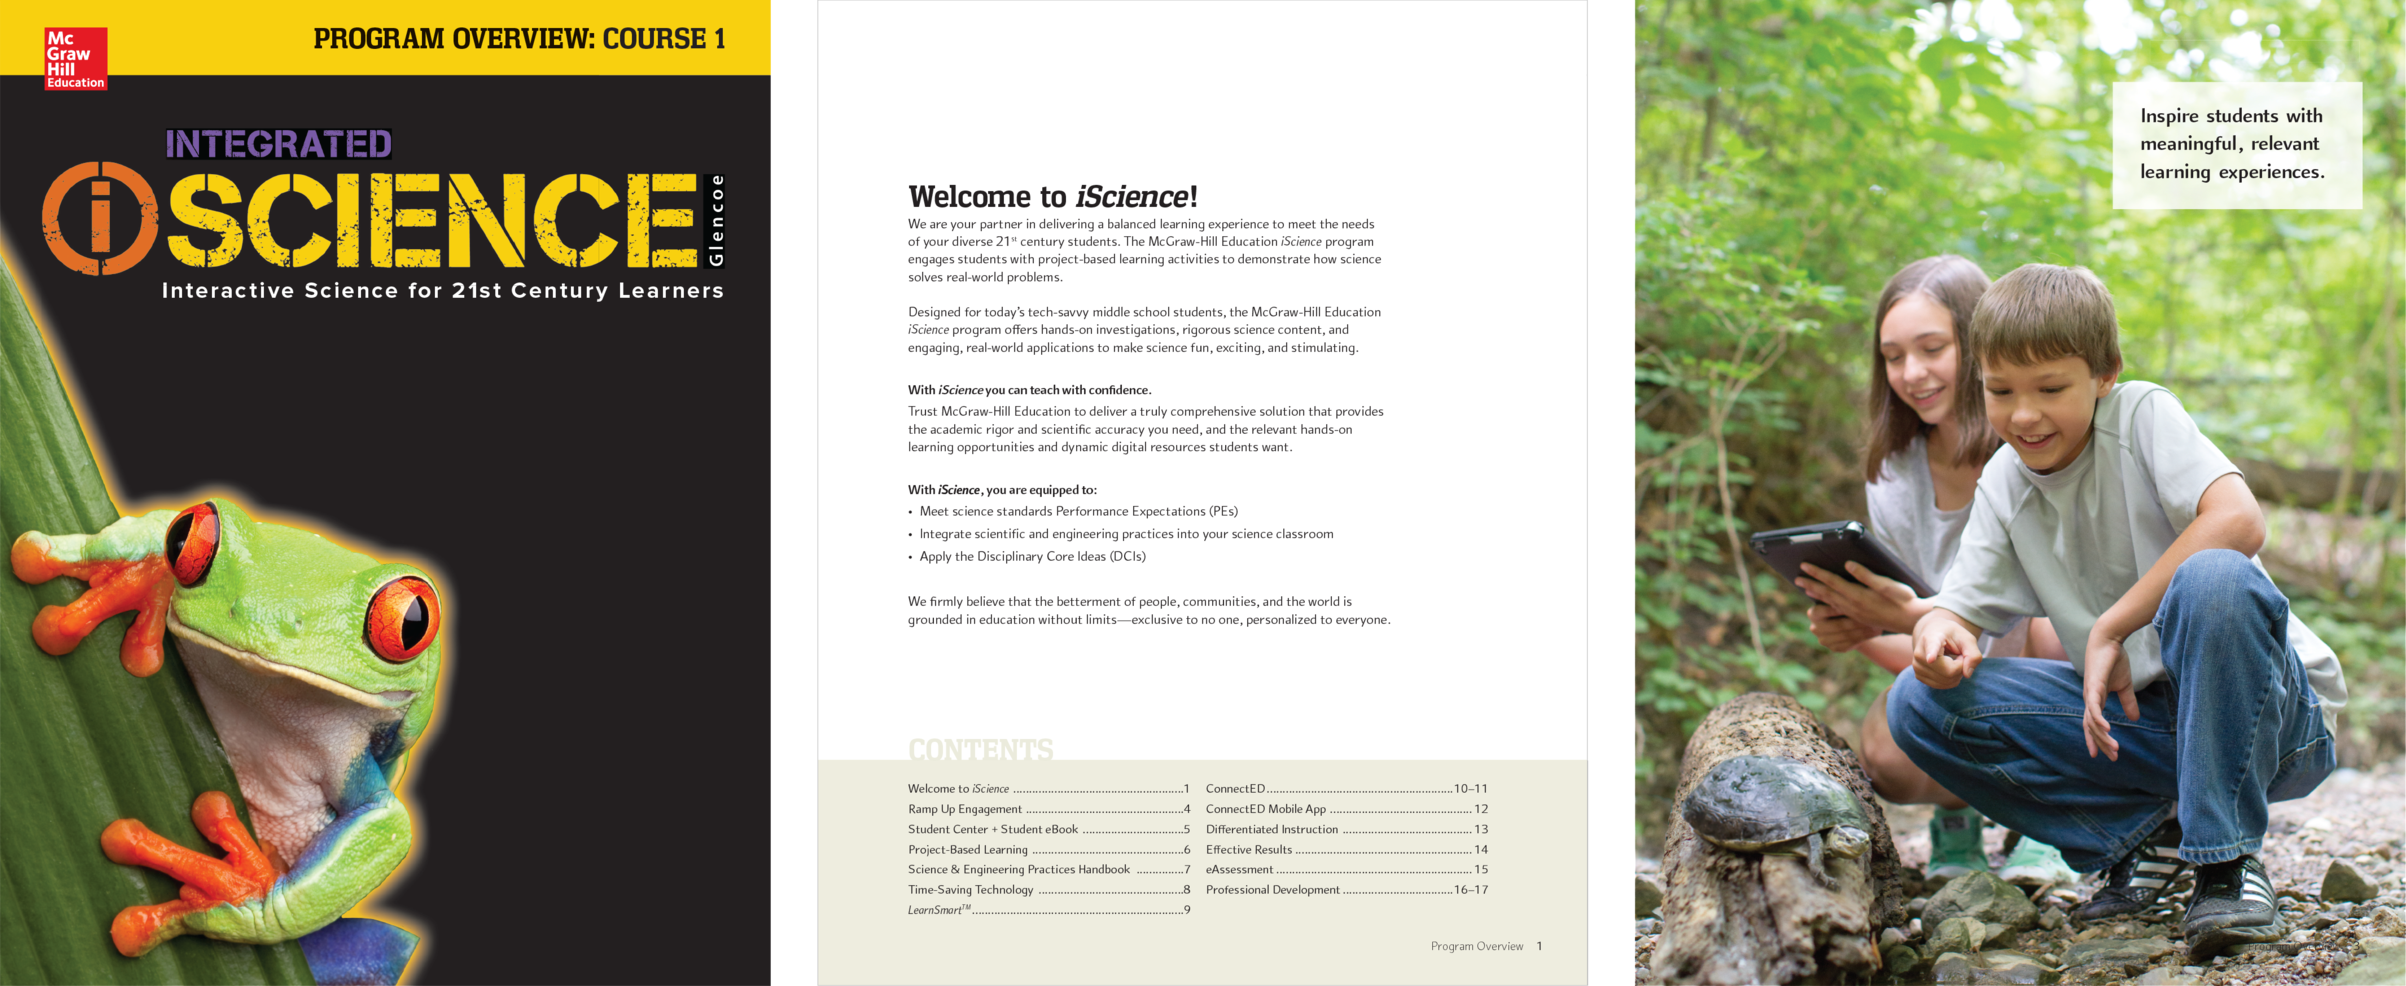 iScience 8-page program overview  Conceptualized and designed in InDesign